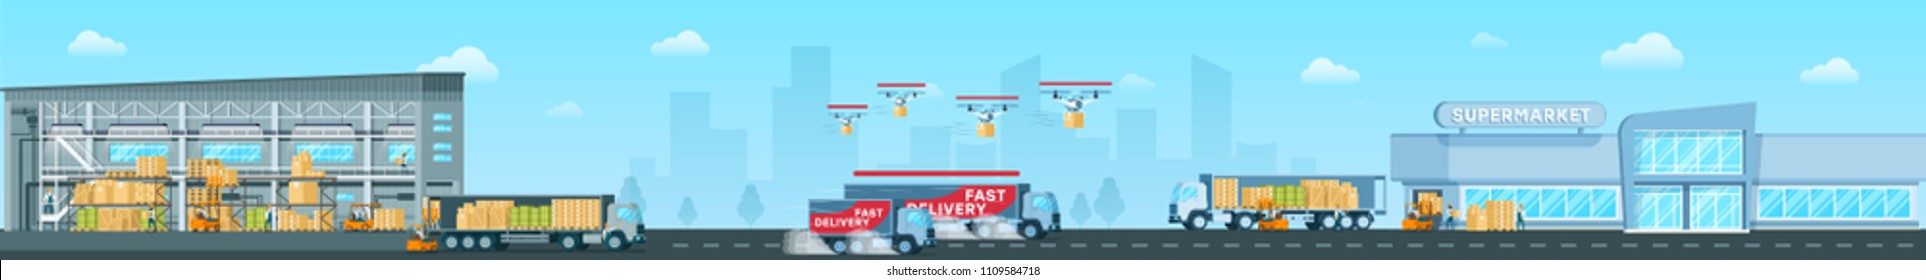 Fast Delivering Goods from Warehouse to Supermarket Long Panoramic Vector Banner or Concept in Flat Design. Loaded Postal Drones and Cargo Trucks Delivering Freights from Big Storehouse to City Mall